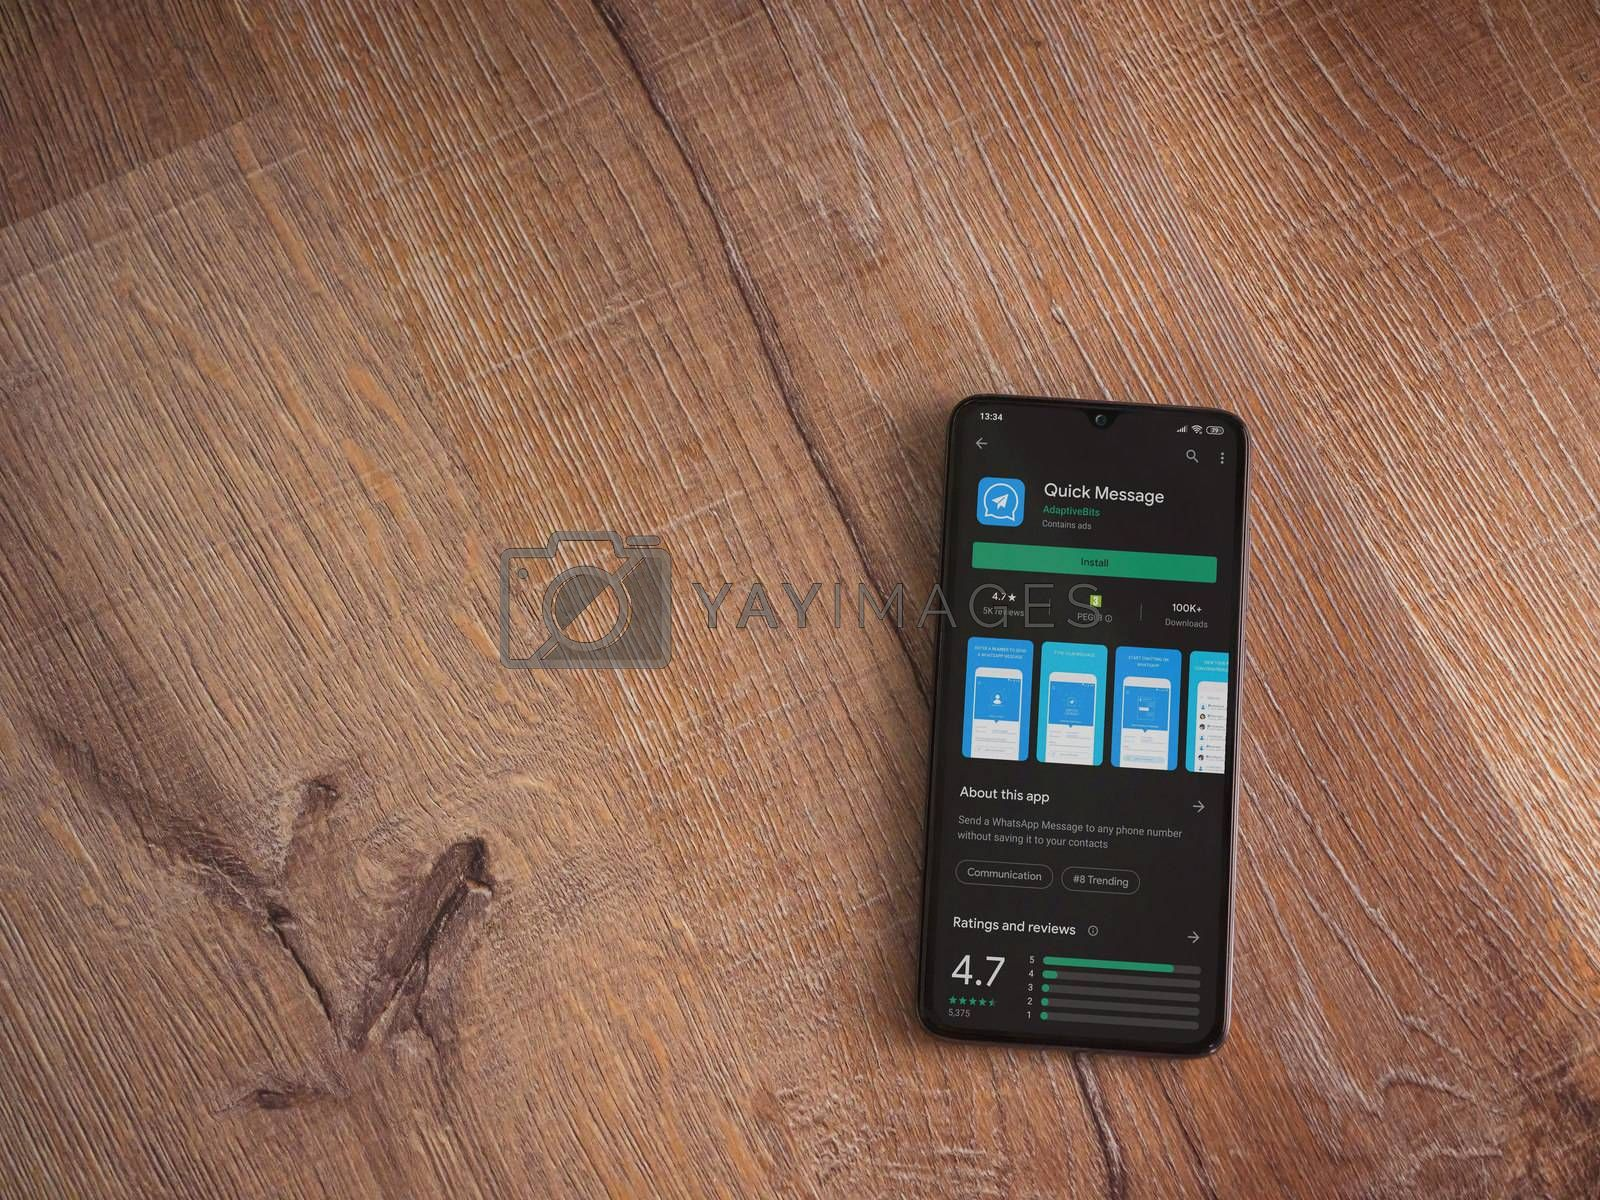 Lod, Israel - July 8, 2020: Quick Message app play store page on the display of a black mobile smartphone on wooden background. Top view flat lay with copy space.